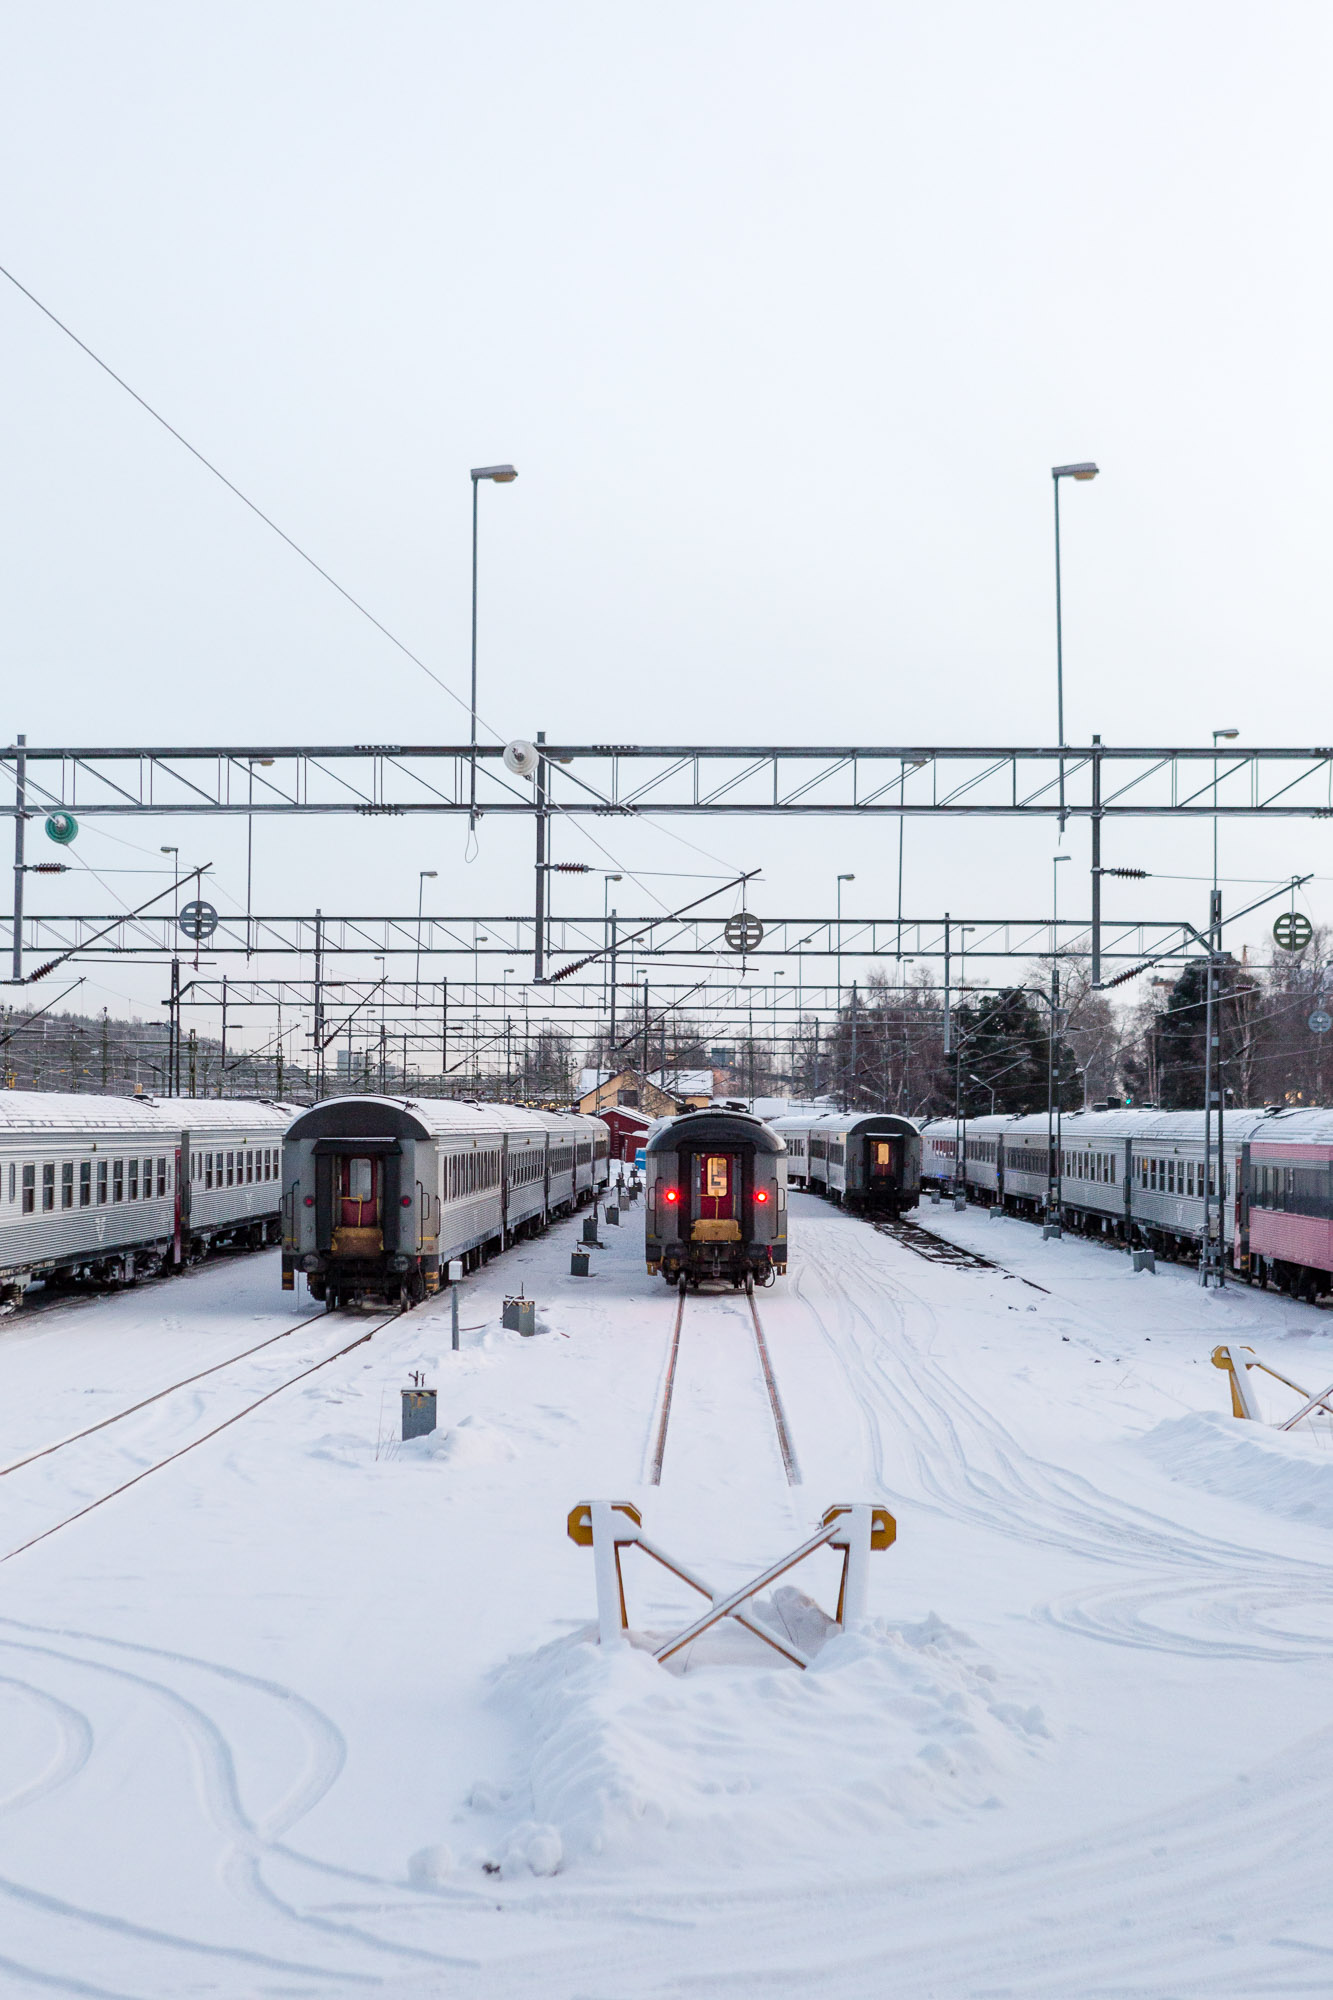 Train carriages, Luleå, Sweden January 2017, Ben Lee Photography